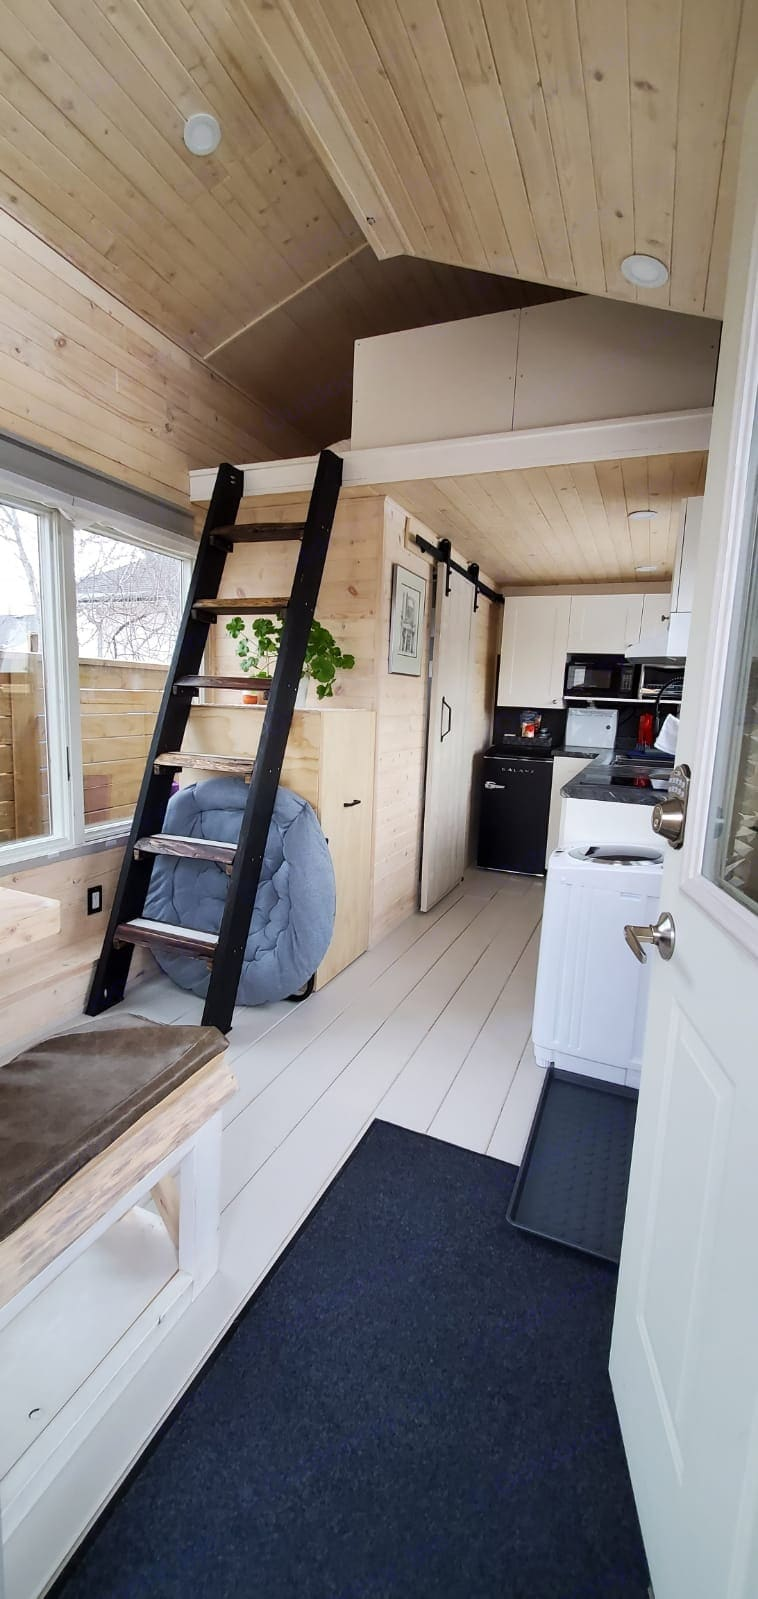 Enough space to cook , wash and organize personal items   . Other Tiny House on Wheels 2018